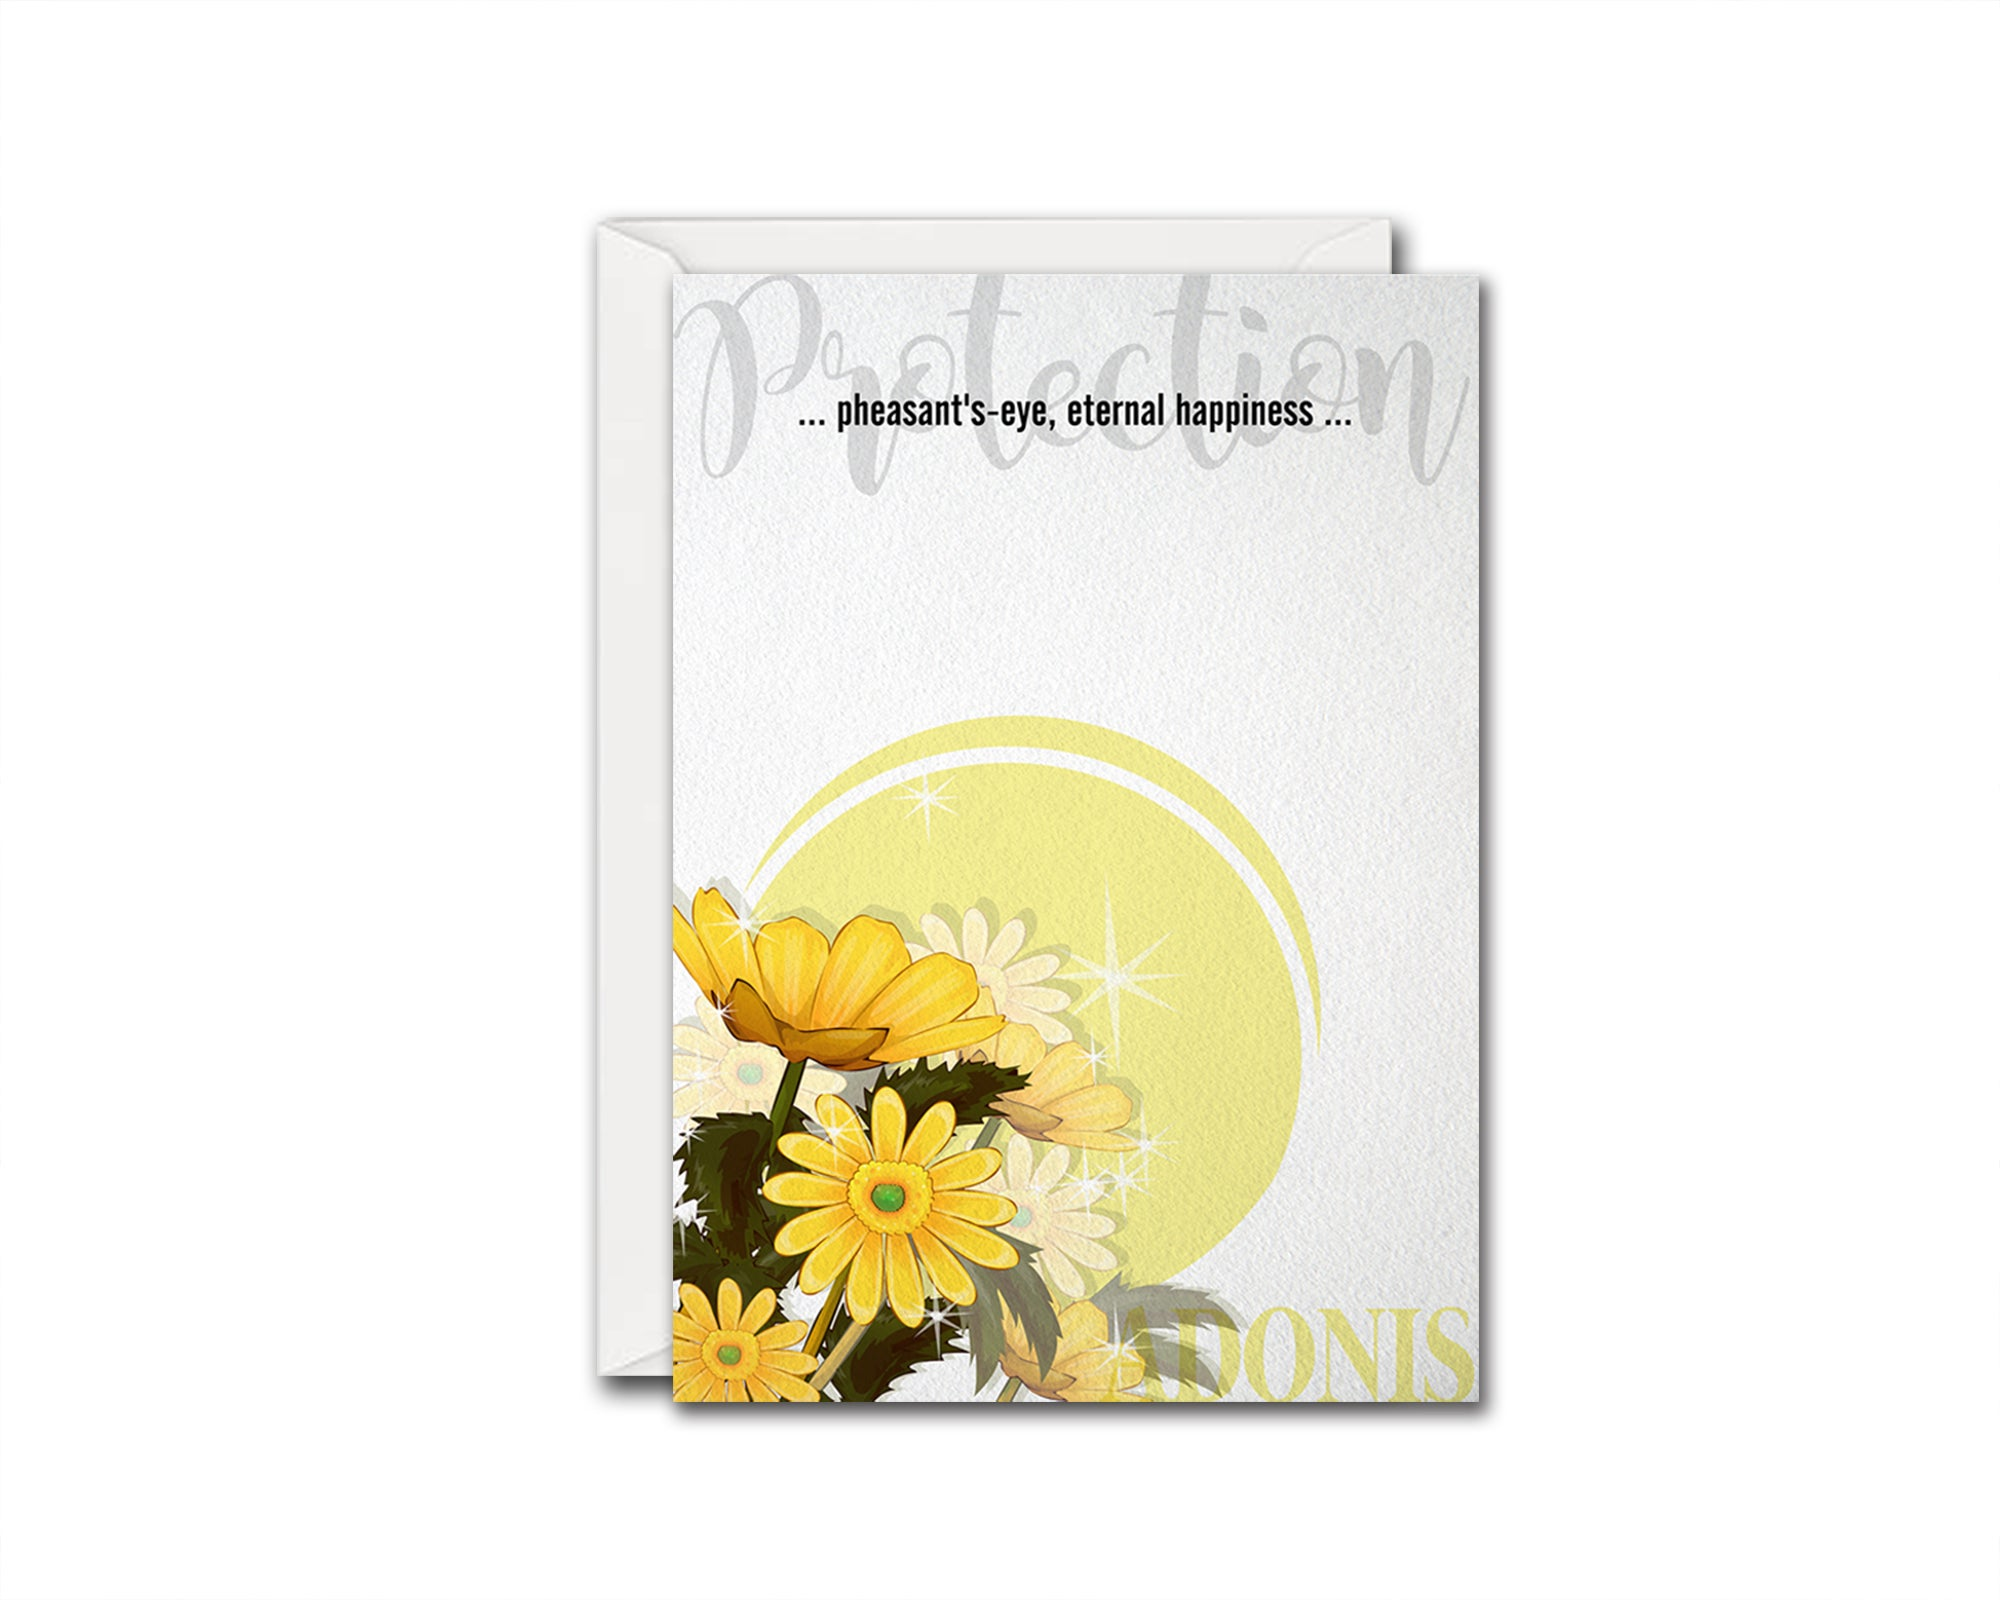 Adonis Flower Meanings Symbolism Customized Gift Cards